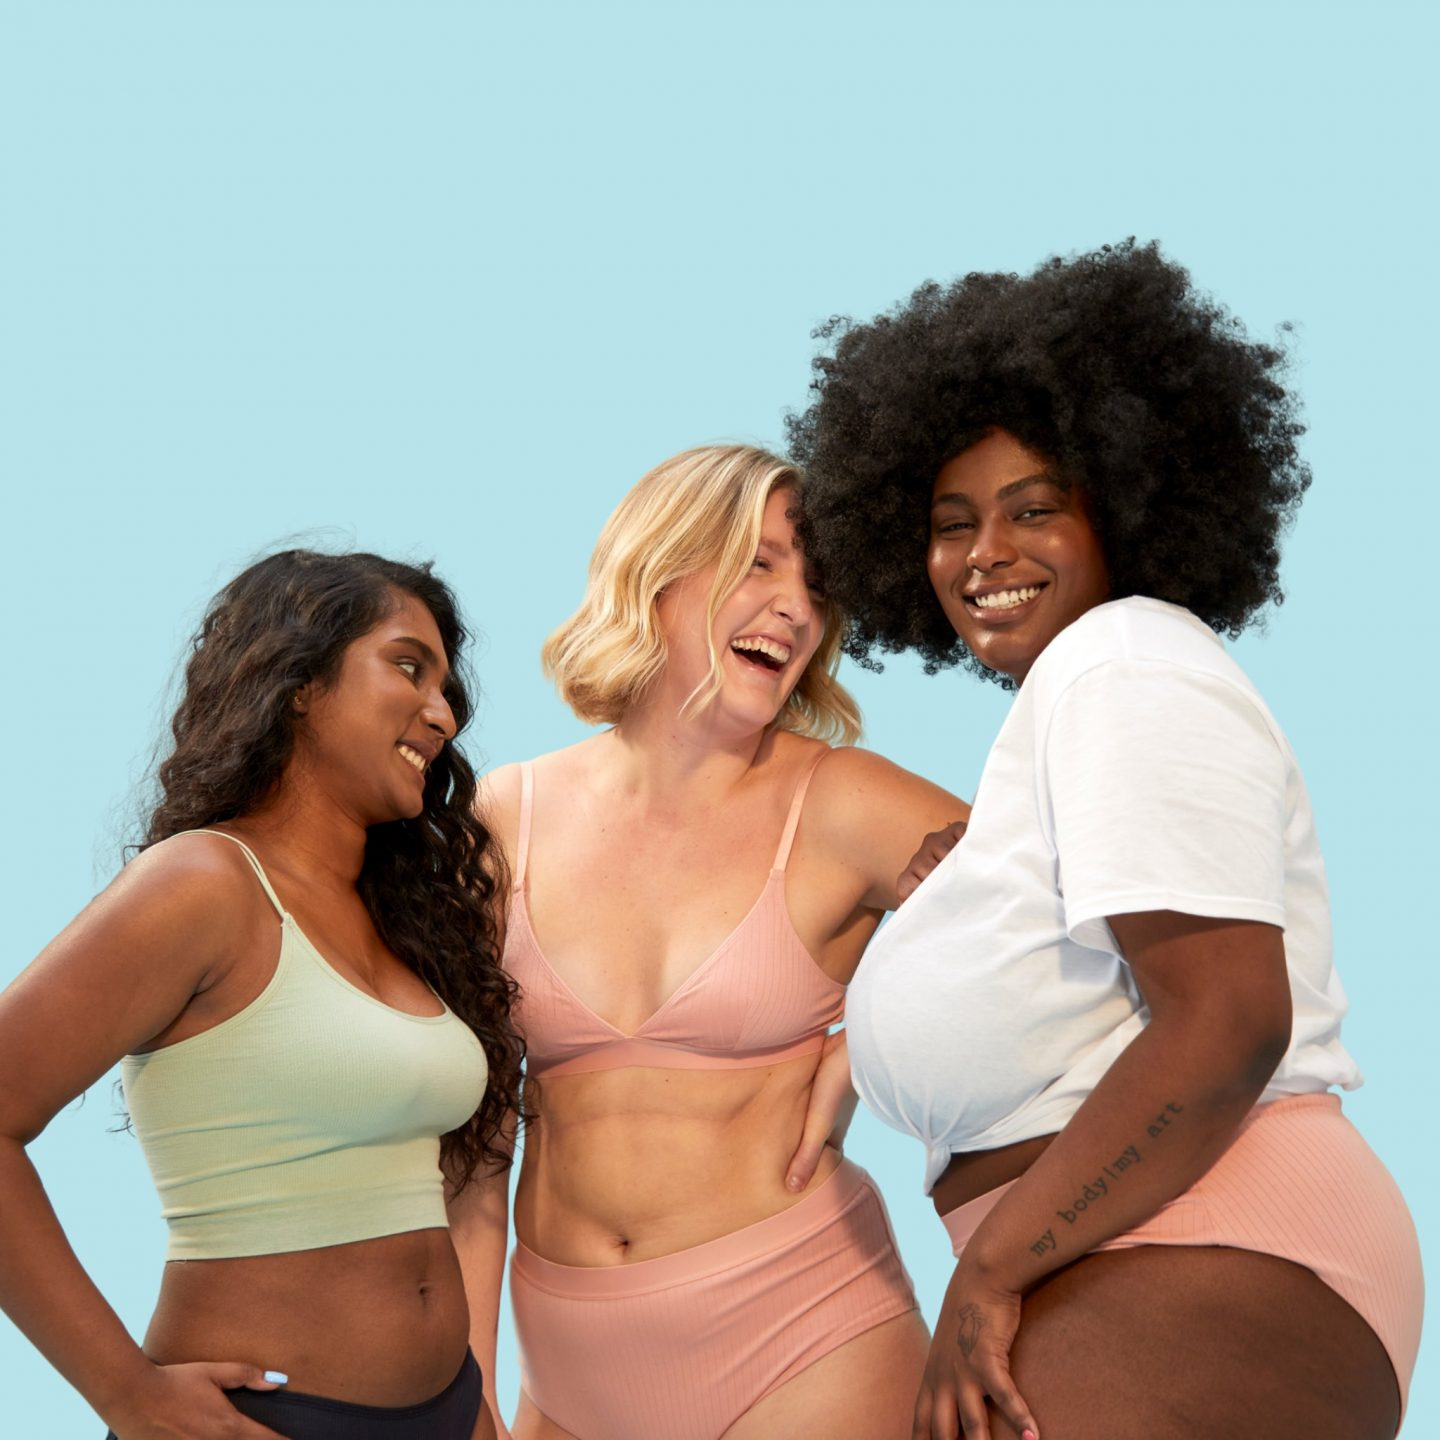 Three women wearing underwear laughing